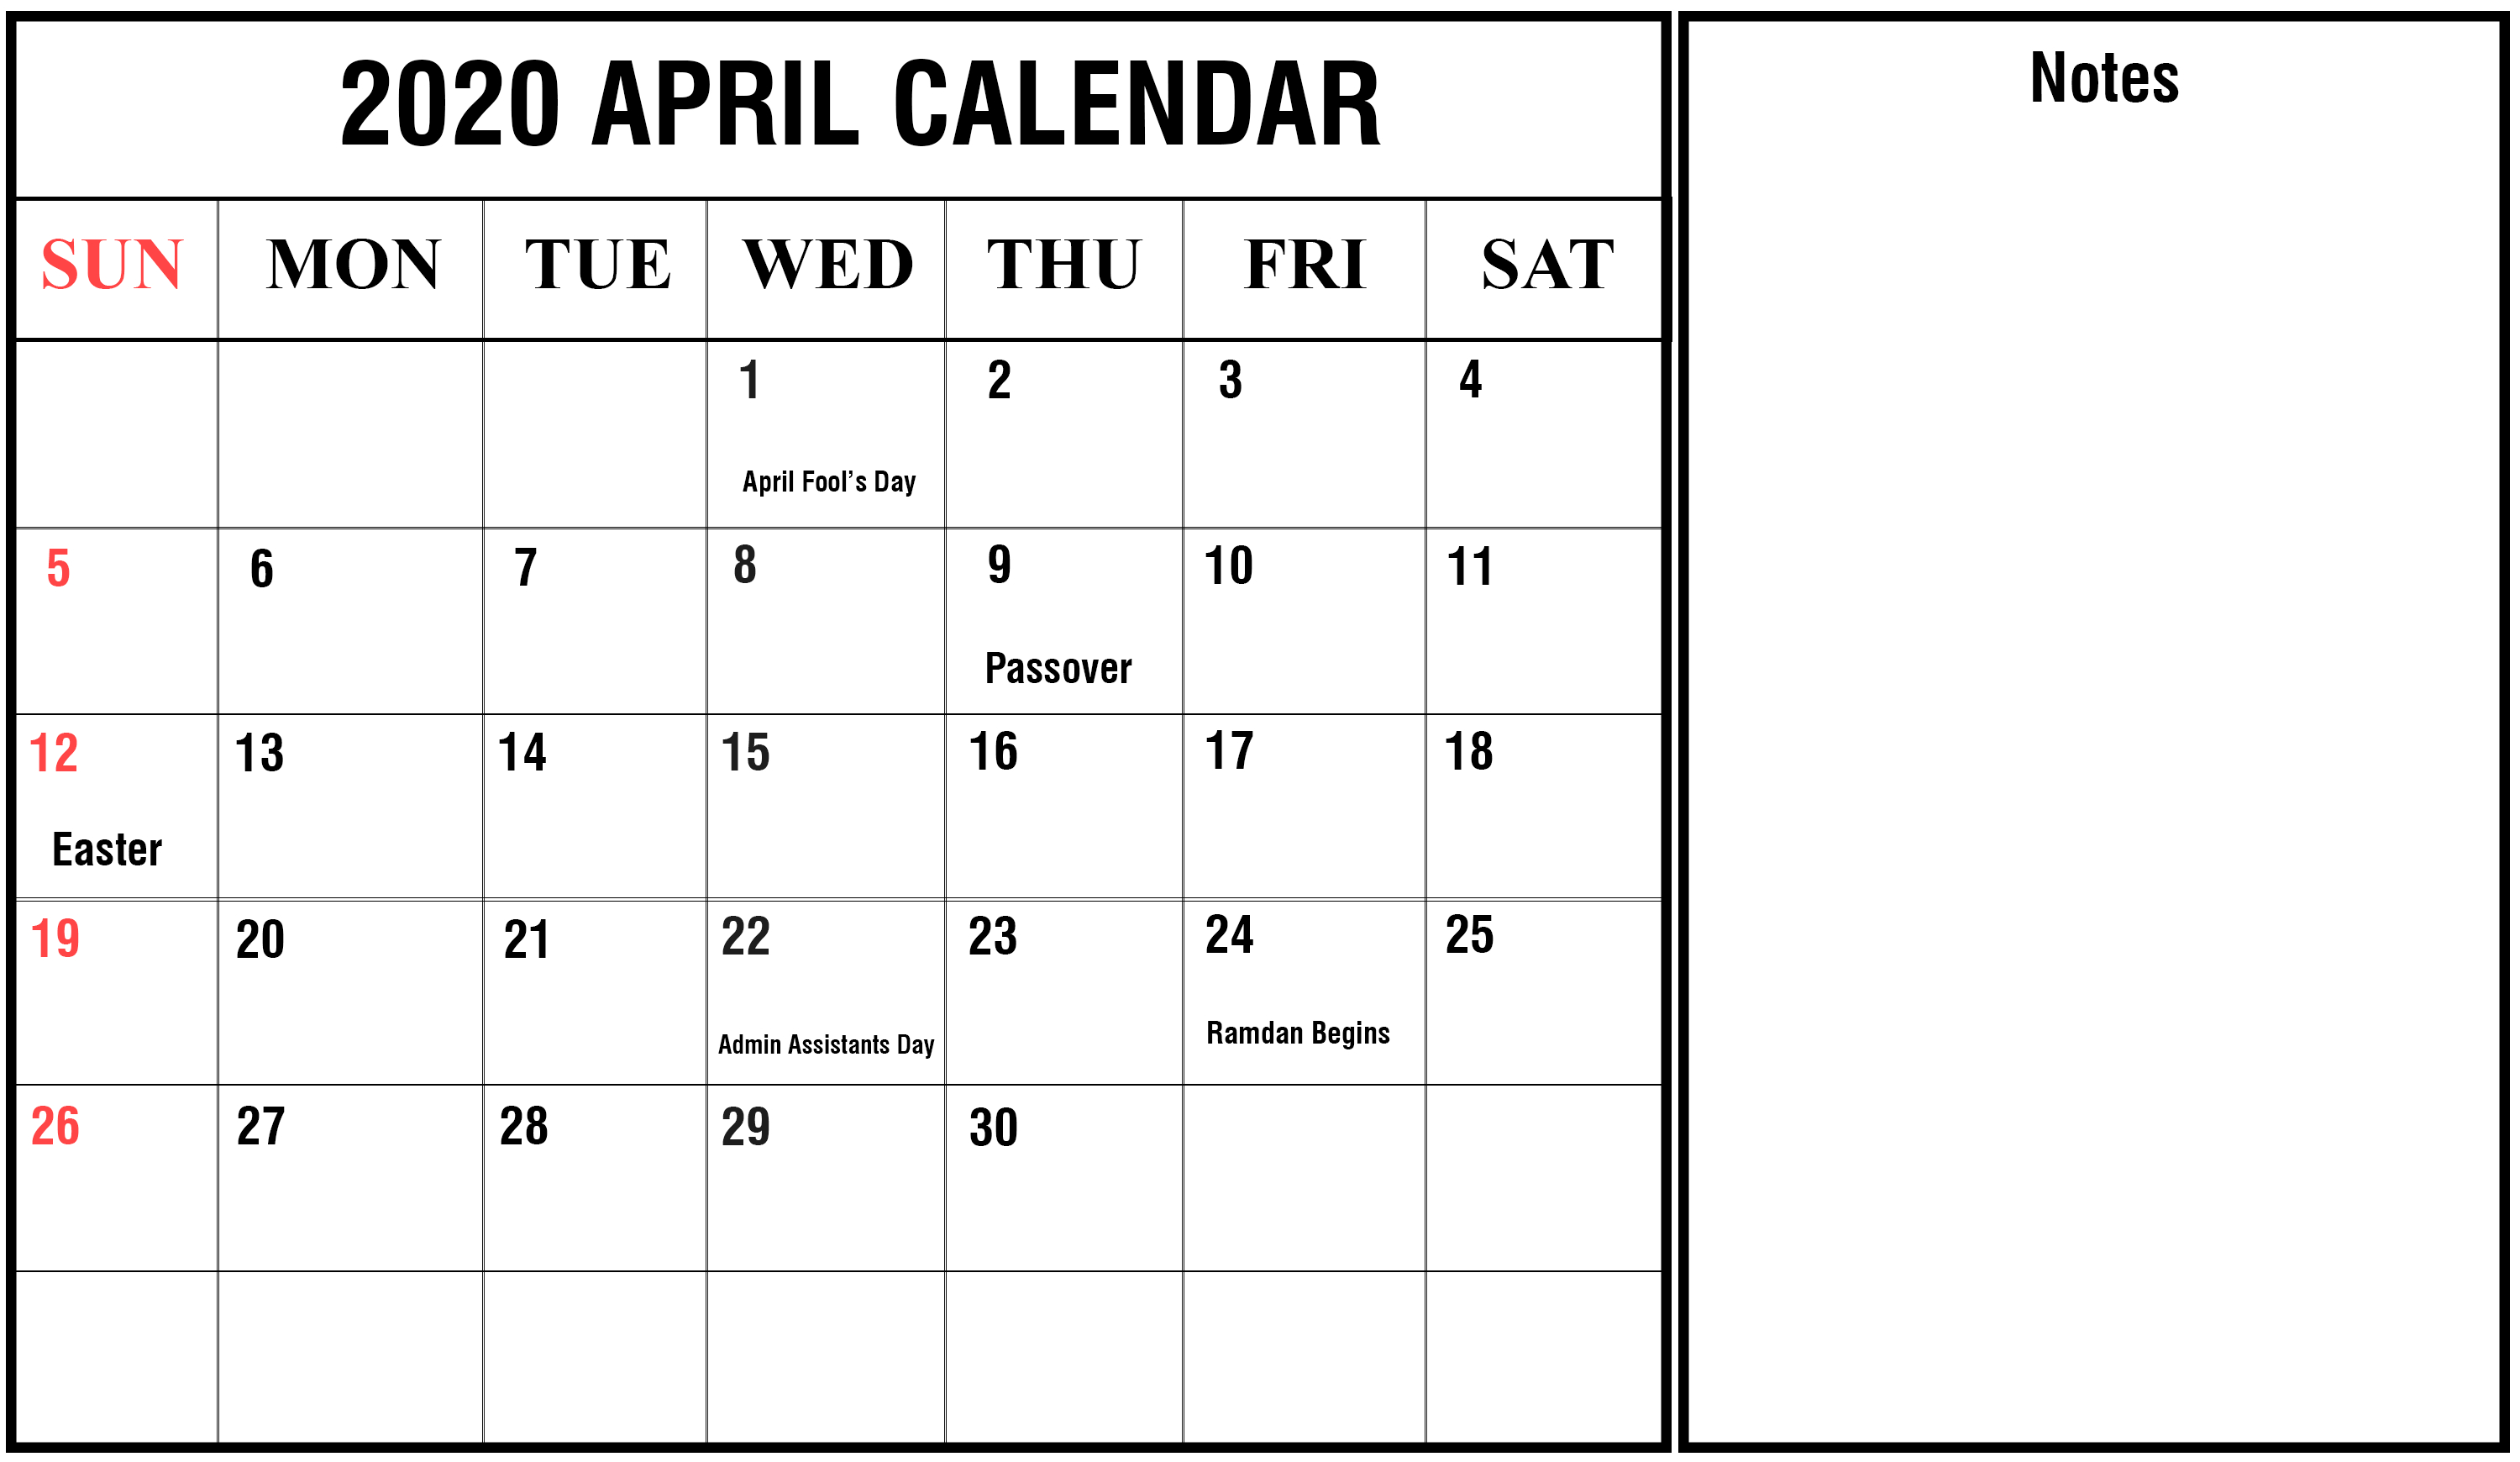 April 2020 Calendar With Holidays | Free Printable Calendar